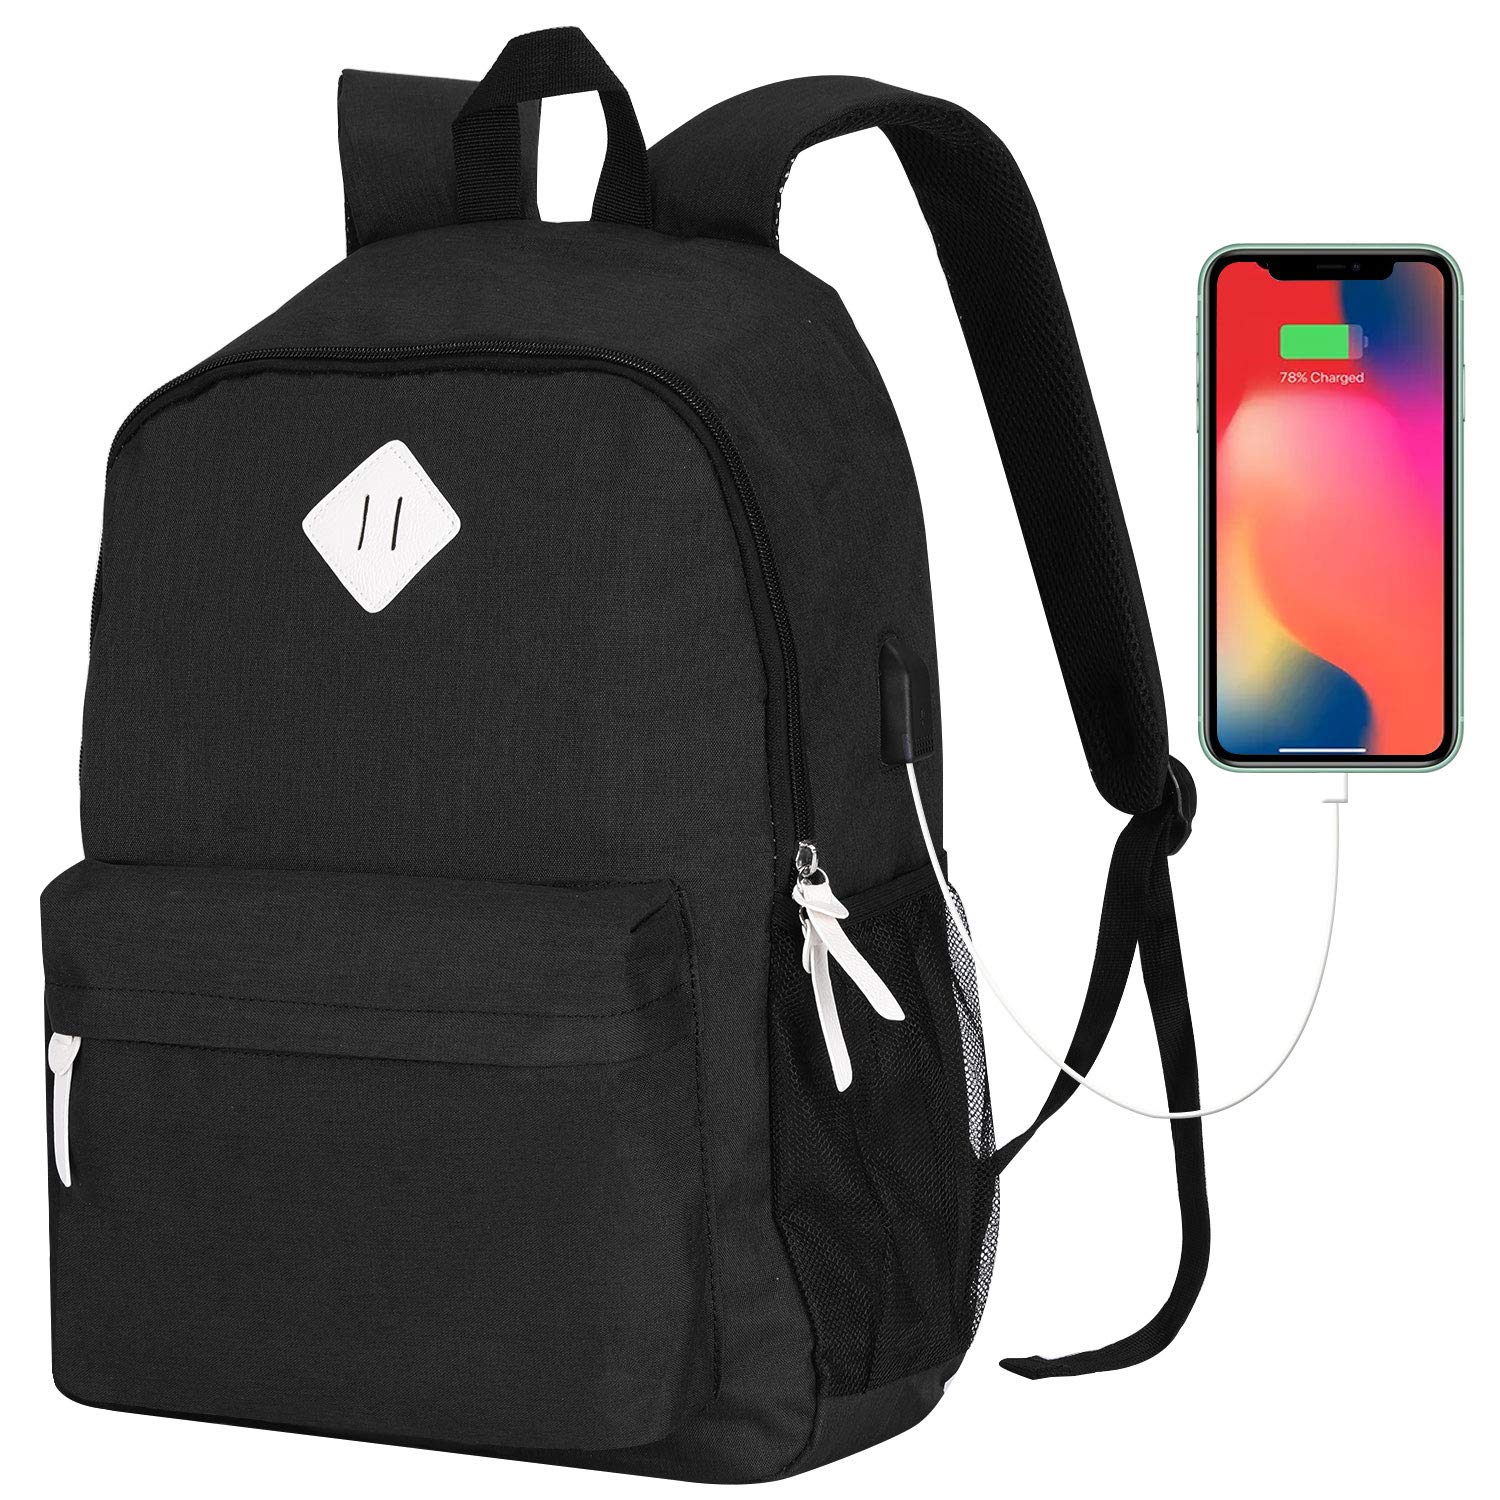 USB Charging Port Water Resistant Canvas Backpack Fits 14 Laptop